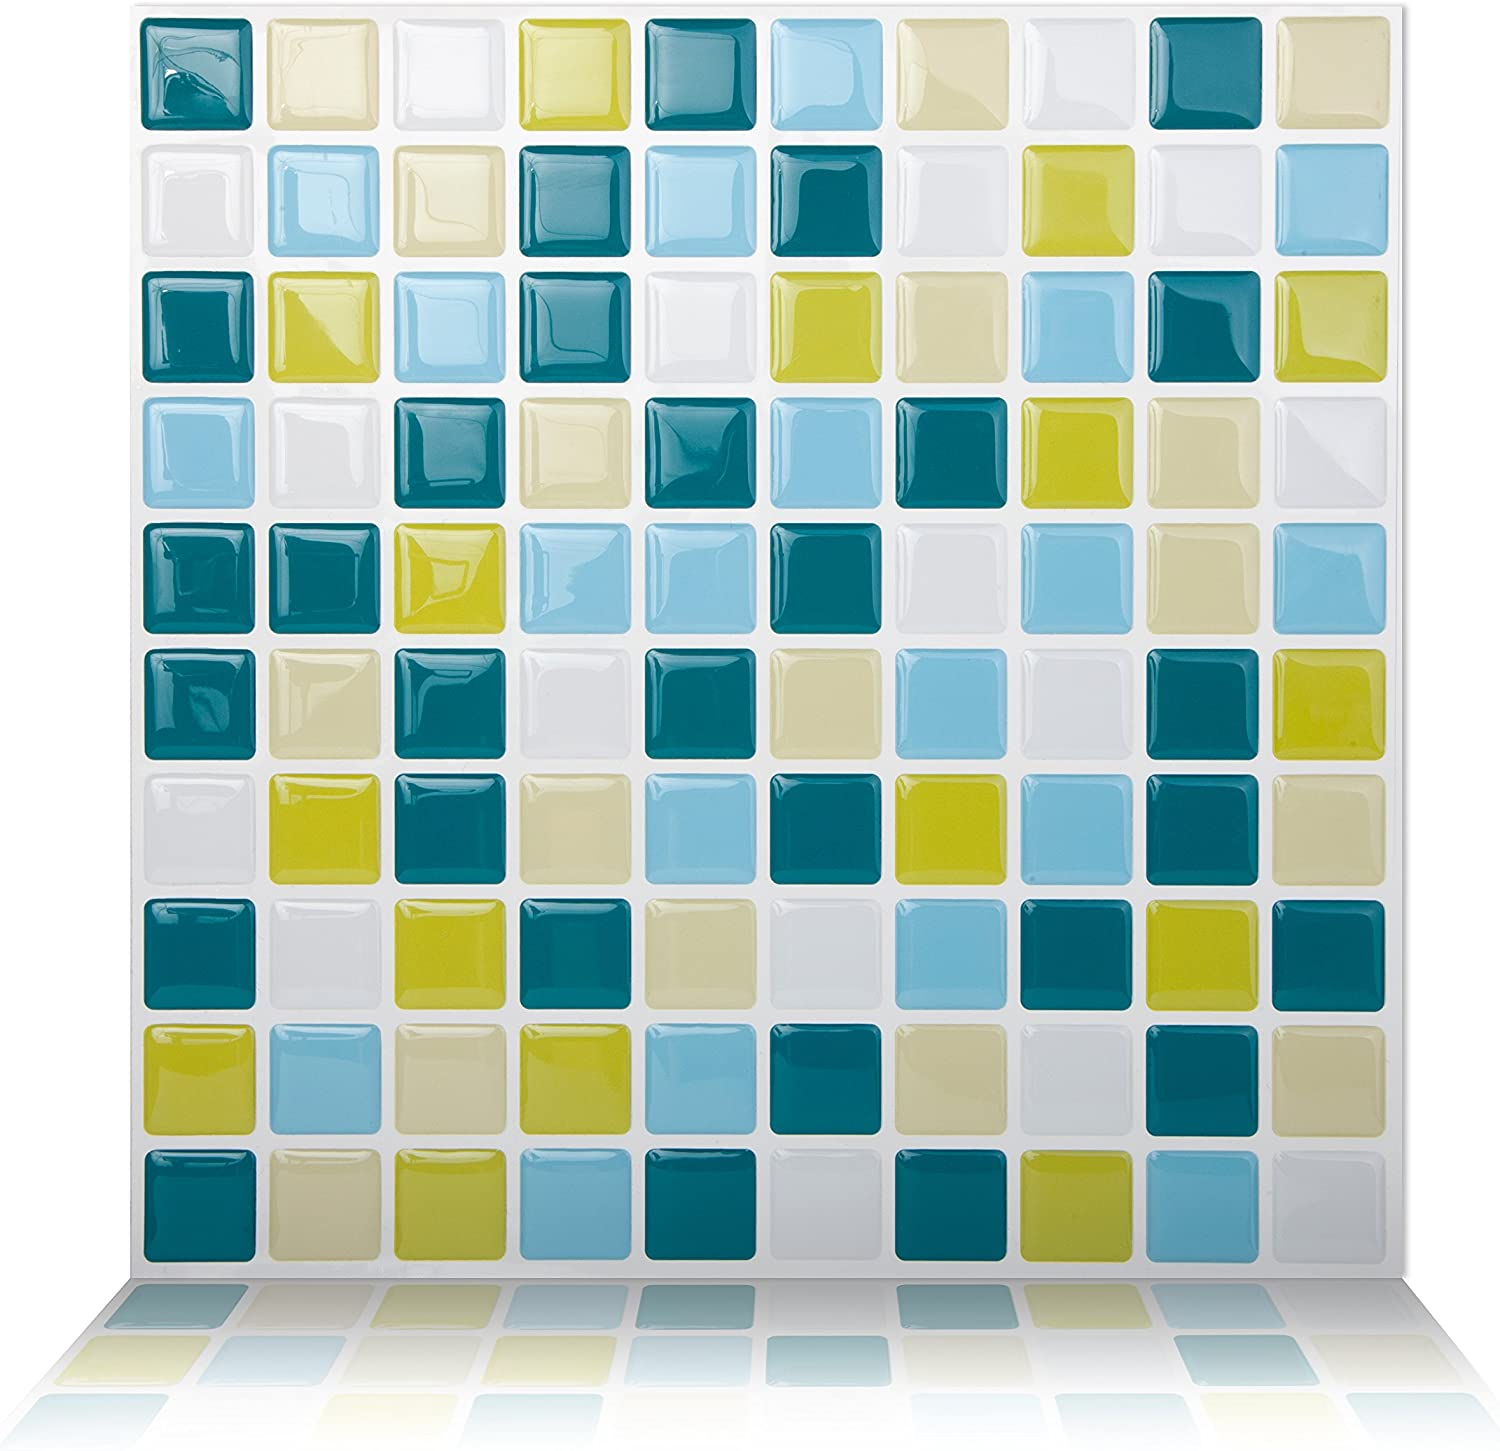 Tic Tac Tiles Peel and Stick Self Adhesive Removable Stick On Kitchen Backsplash Bathroom 3D Wall Tiles in Square Design (Peacockgreen, 5)